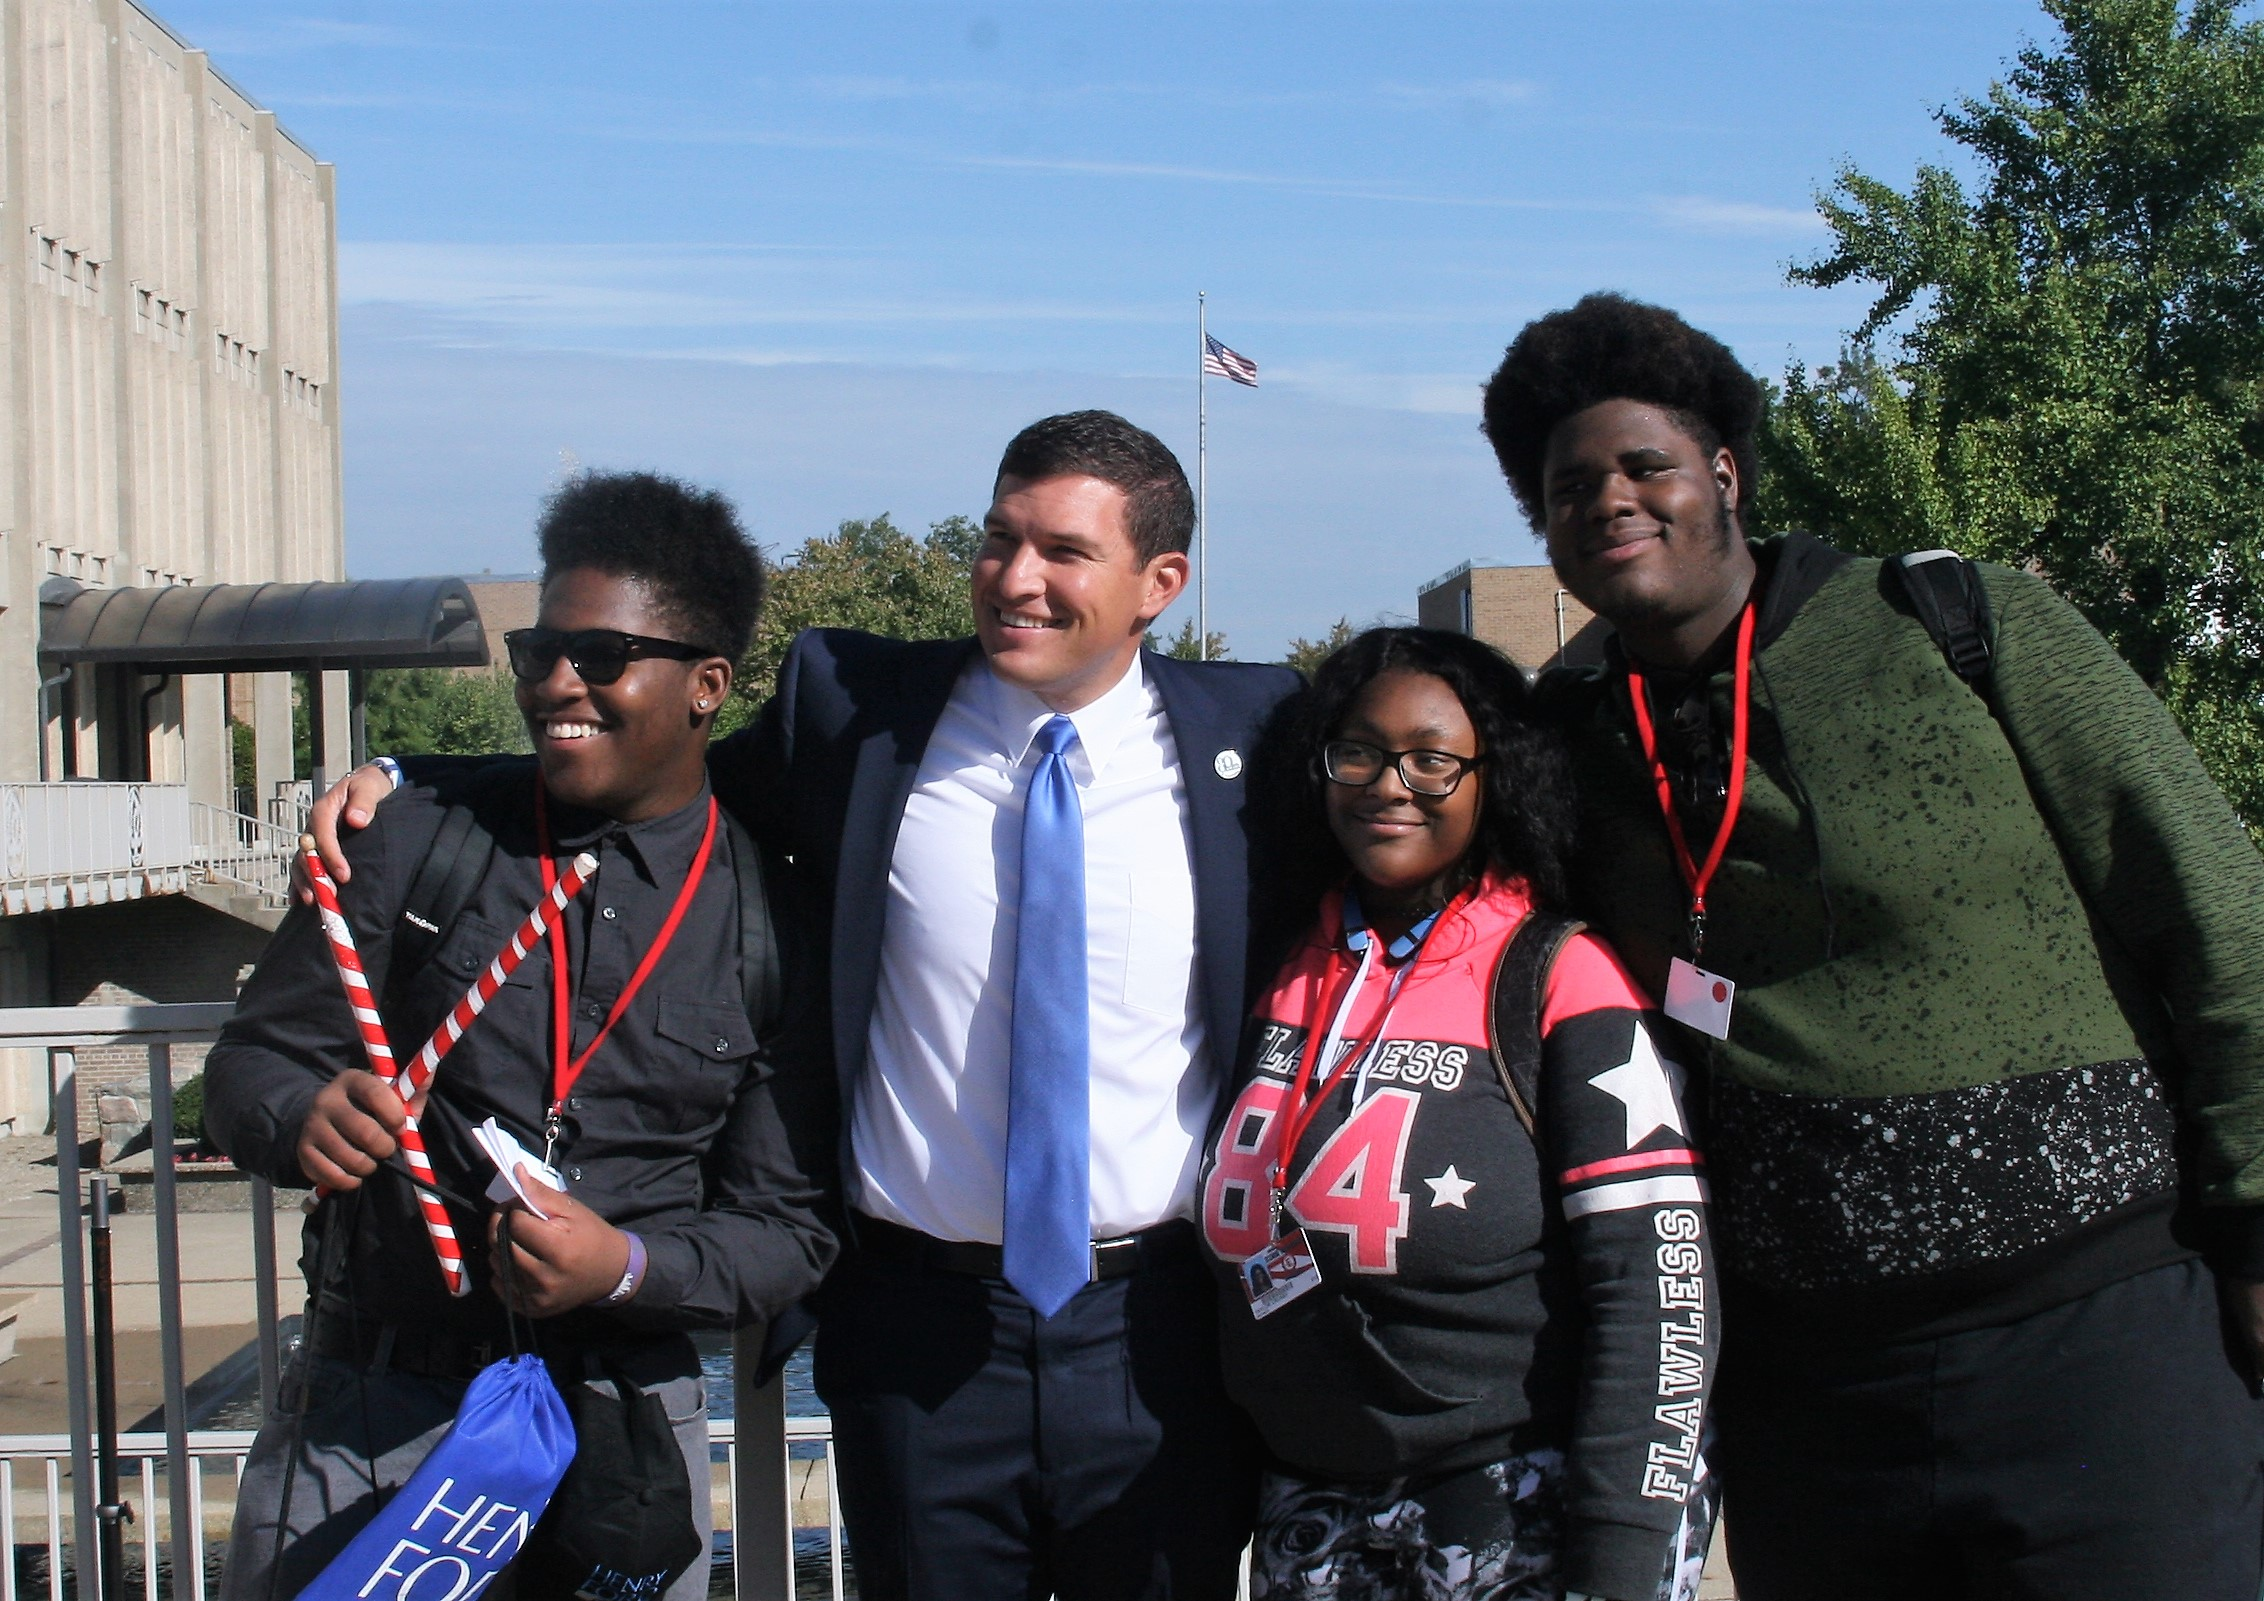 Russ Kavalhuna and three students from Ecorse High School